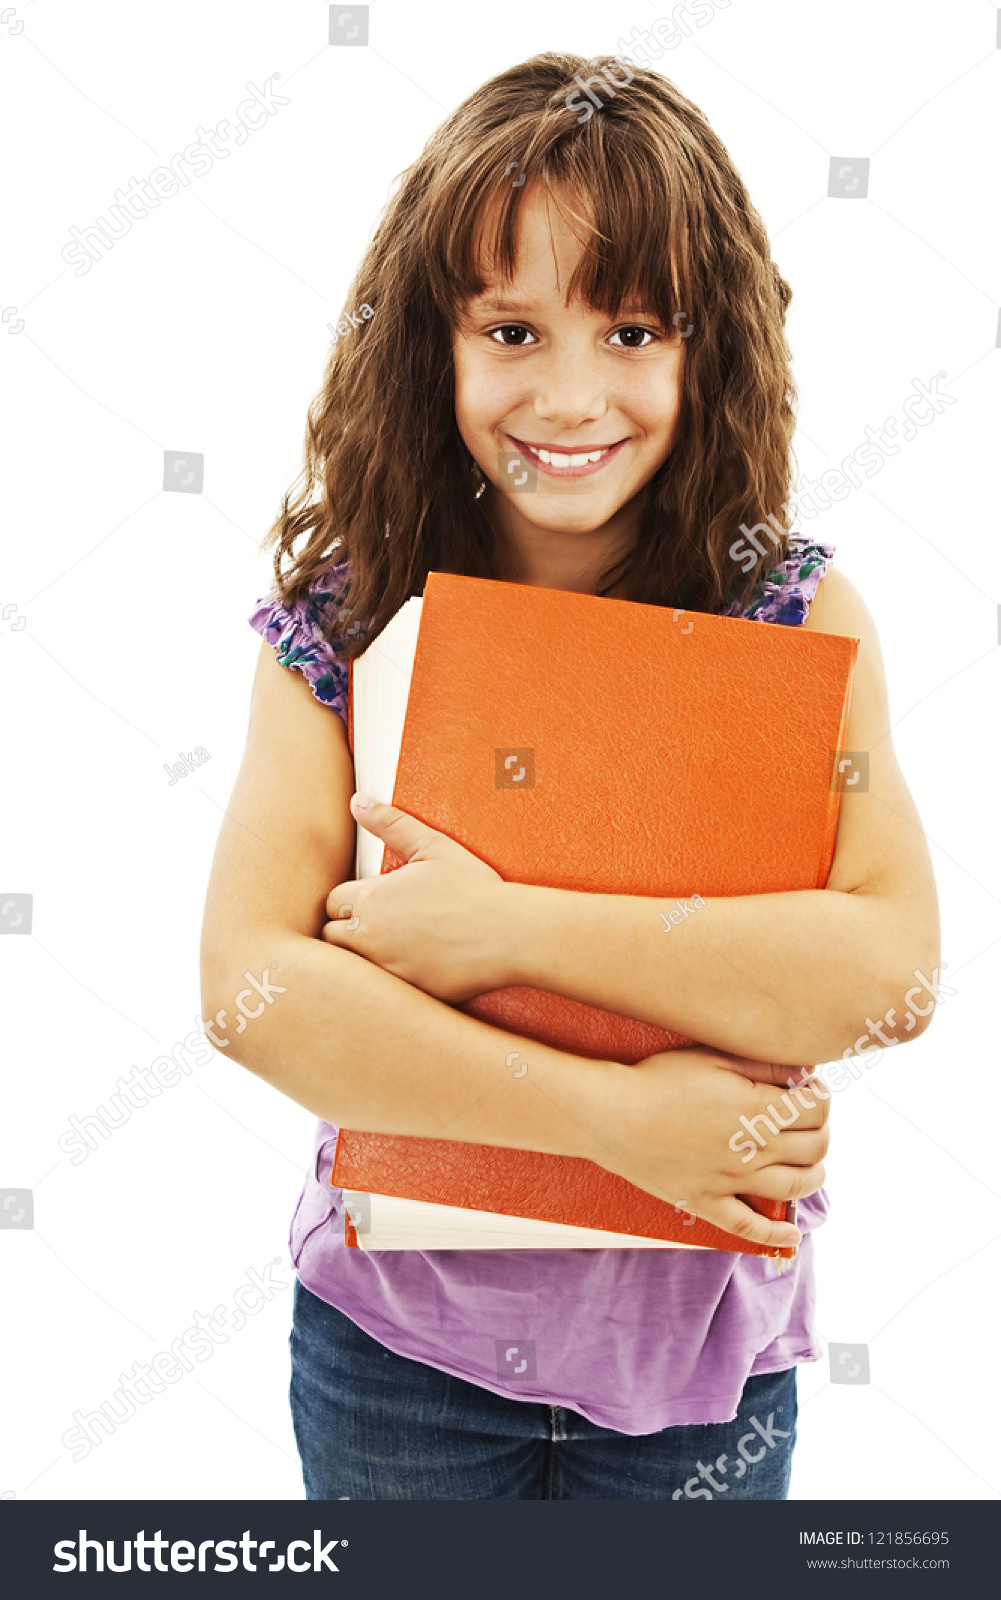 Little girl holding a big book. Isolated on white background